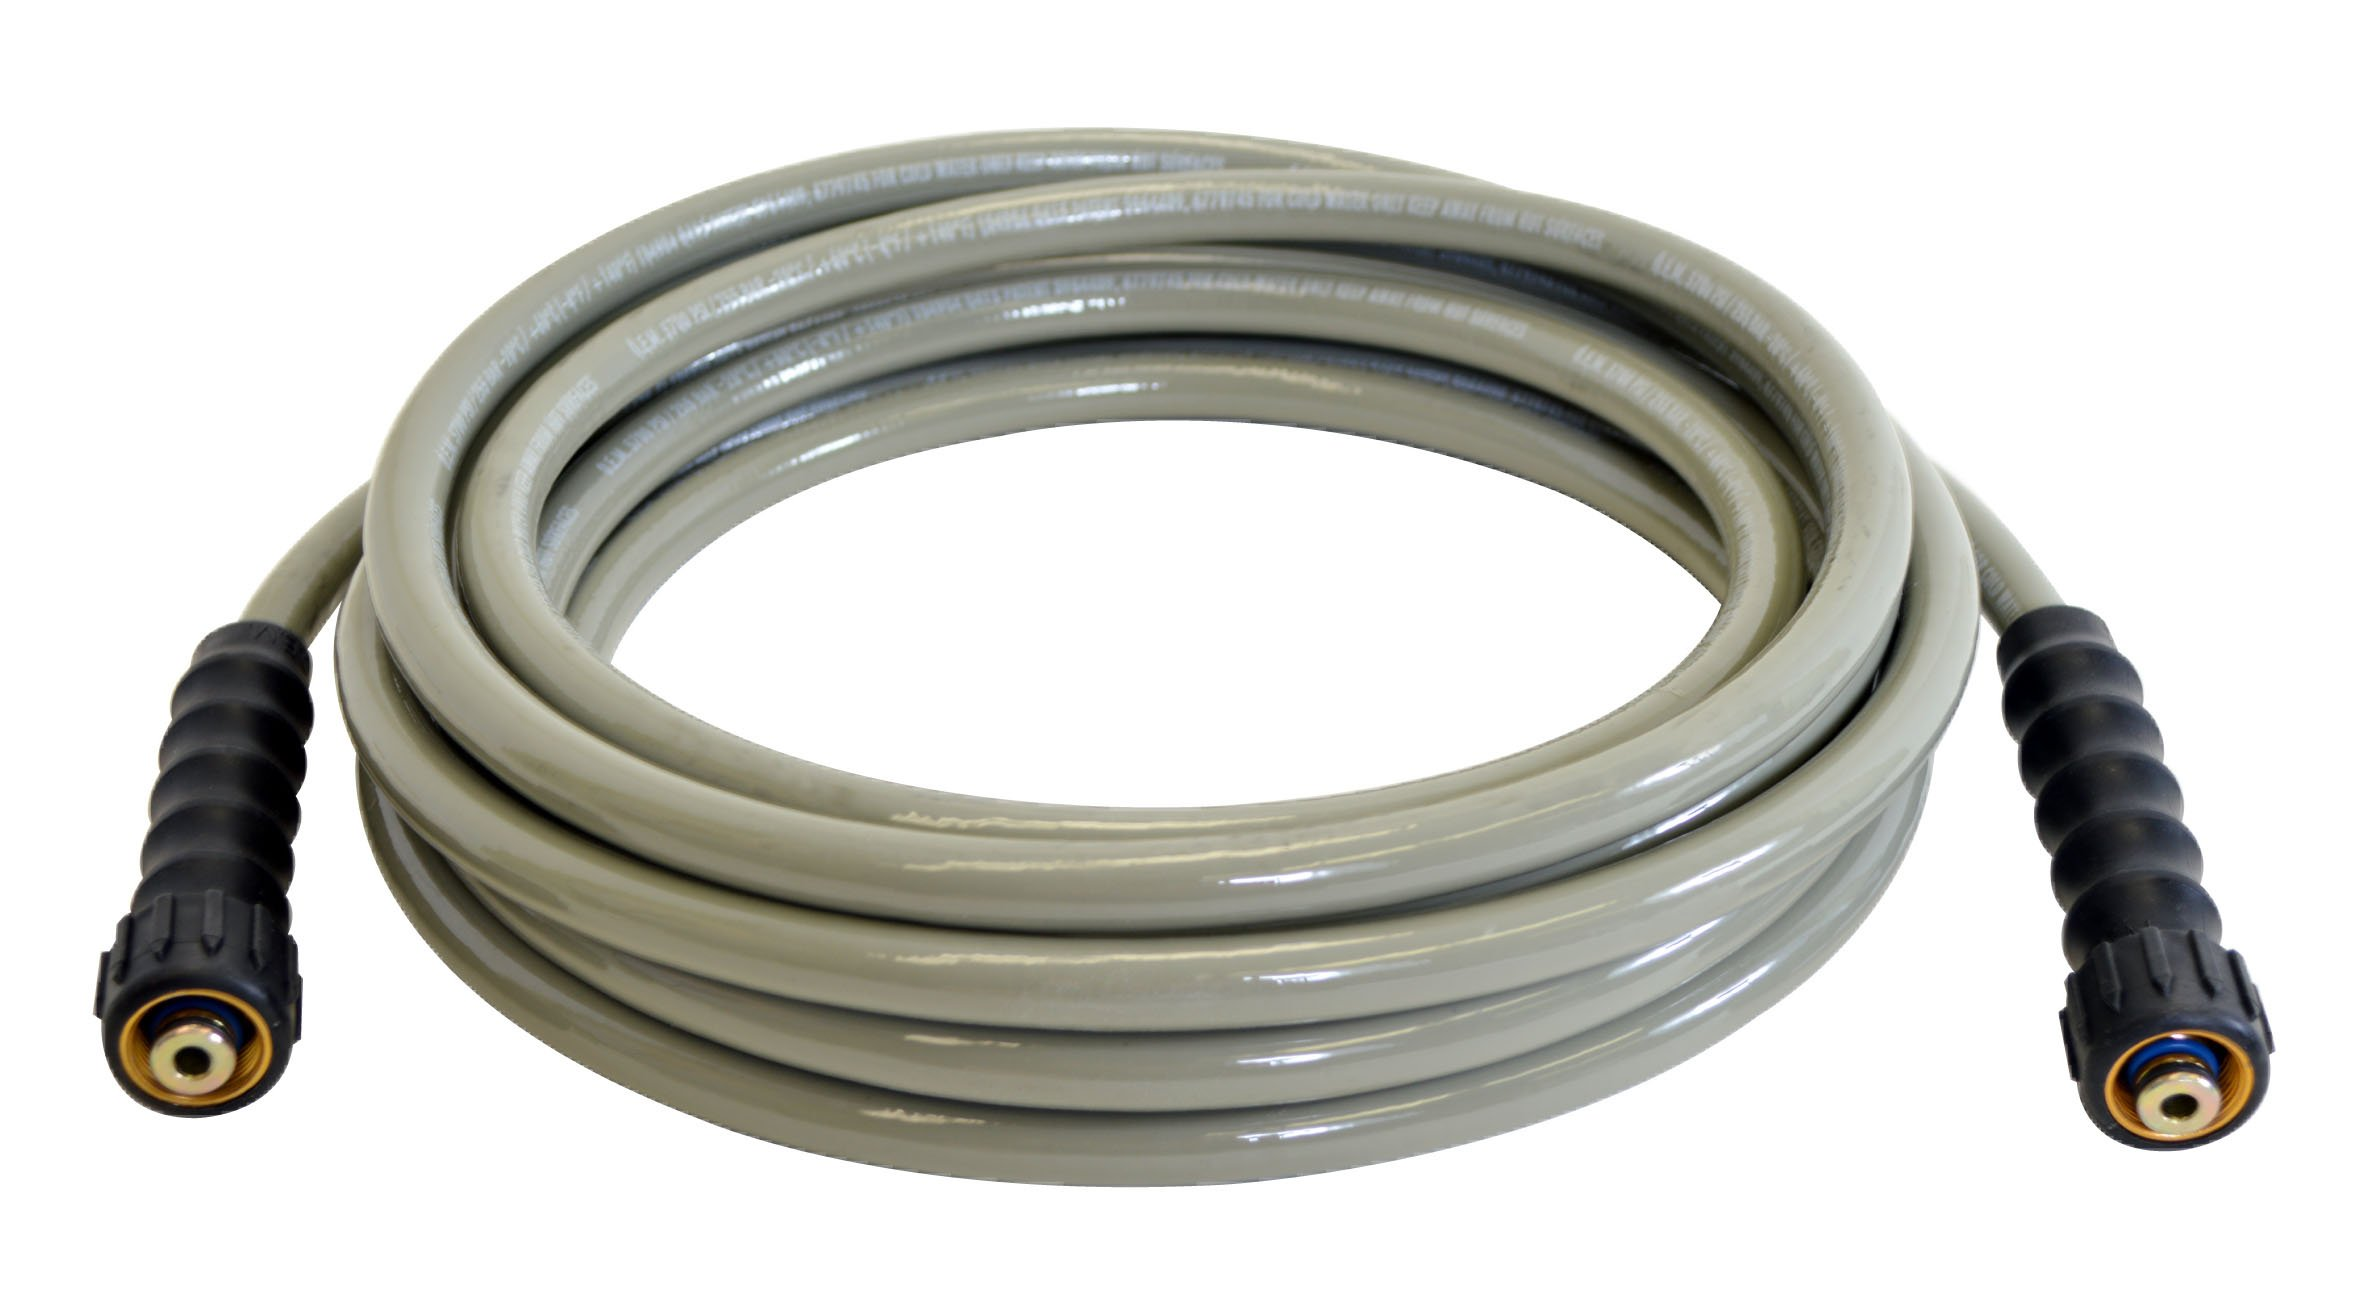 SIMPSON Cleaning MorFlex 40225-5/16'' x 25' 3700 PSI Cold Water Replacement/ Extension Hose by Simpson Cleaning